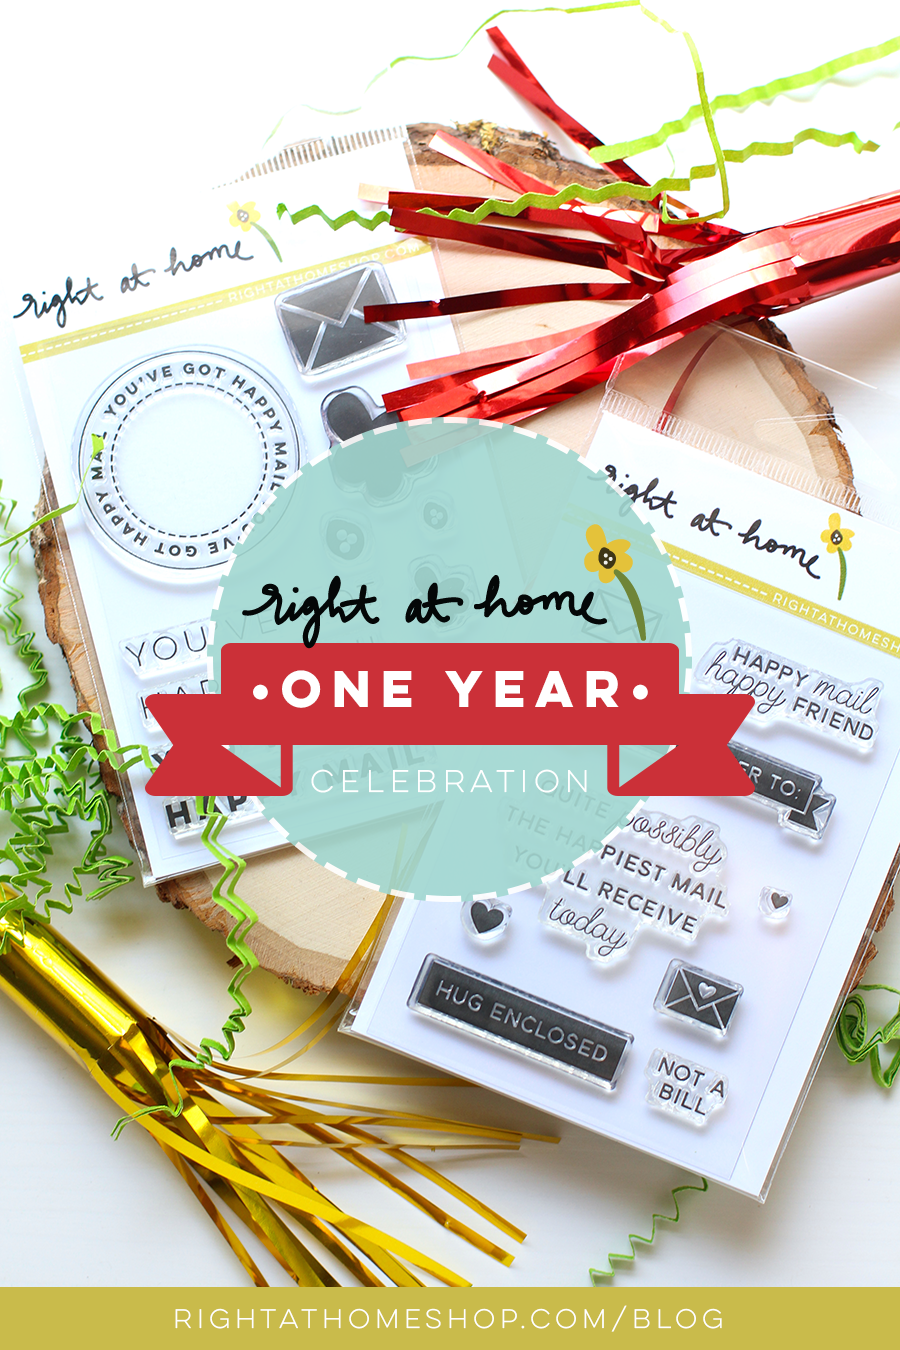 Right at Home Stamps One Year Celebration Blog Hop // rightathomeshop.com/blog